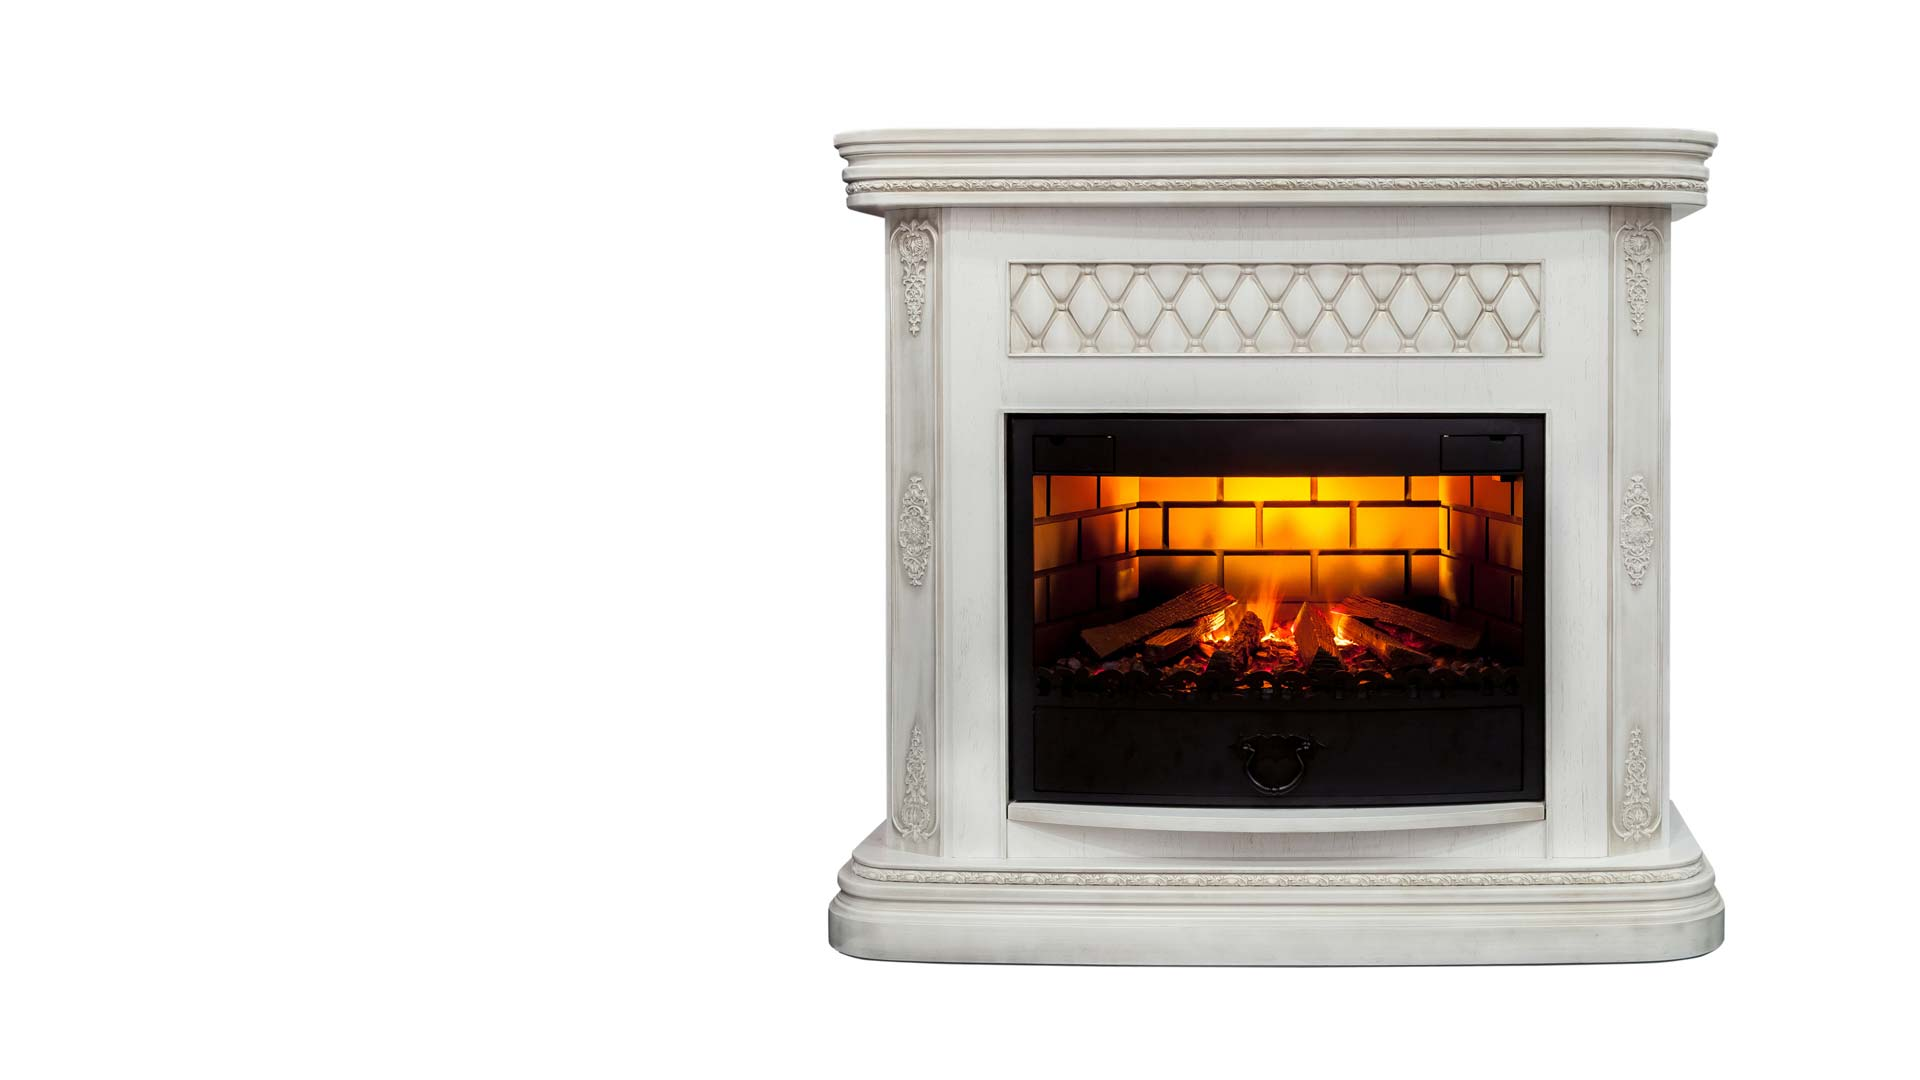 Gas Fireplace Starter Pipe A Cozy Fireplace Fireplace Store In Naperville Crest Hill And